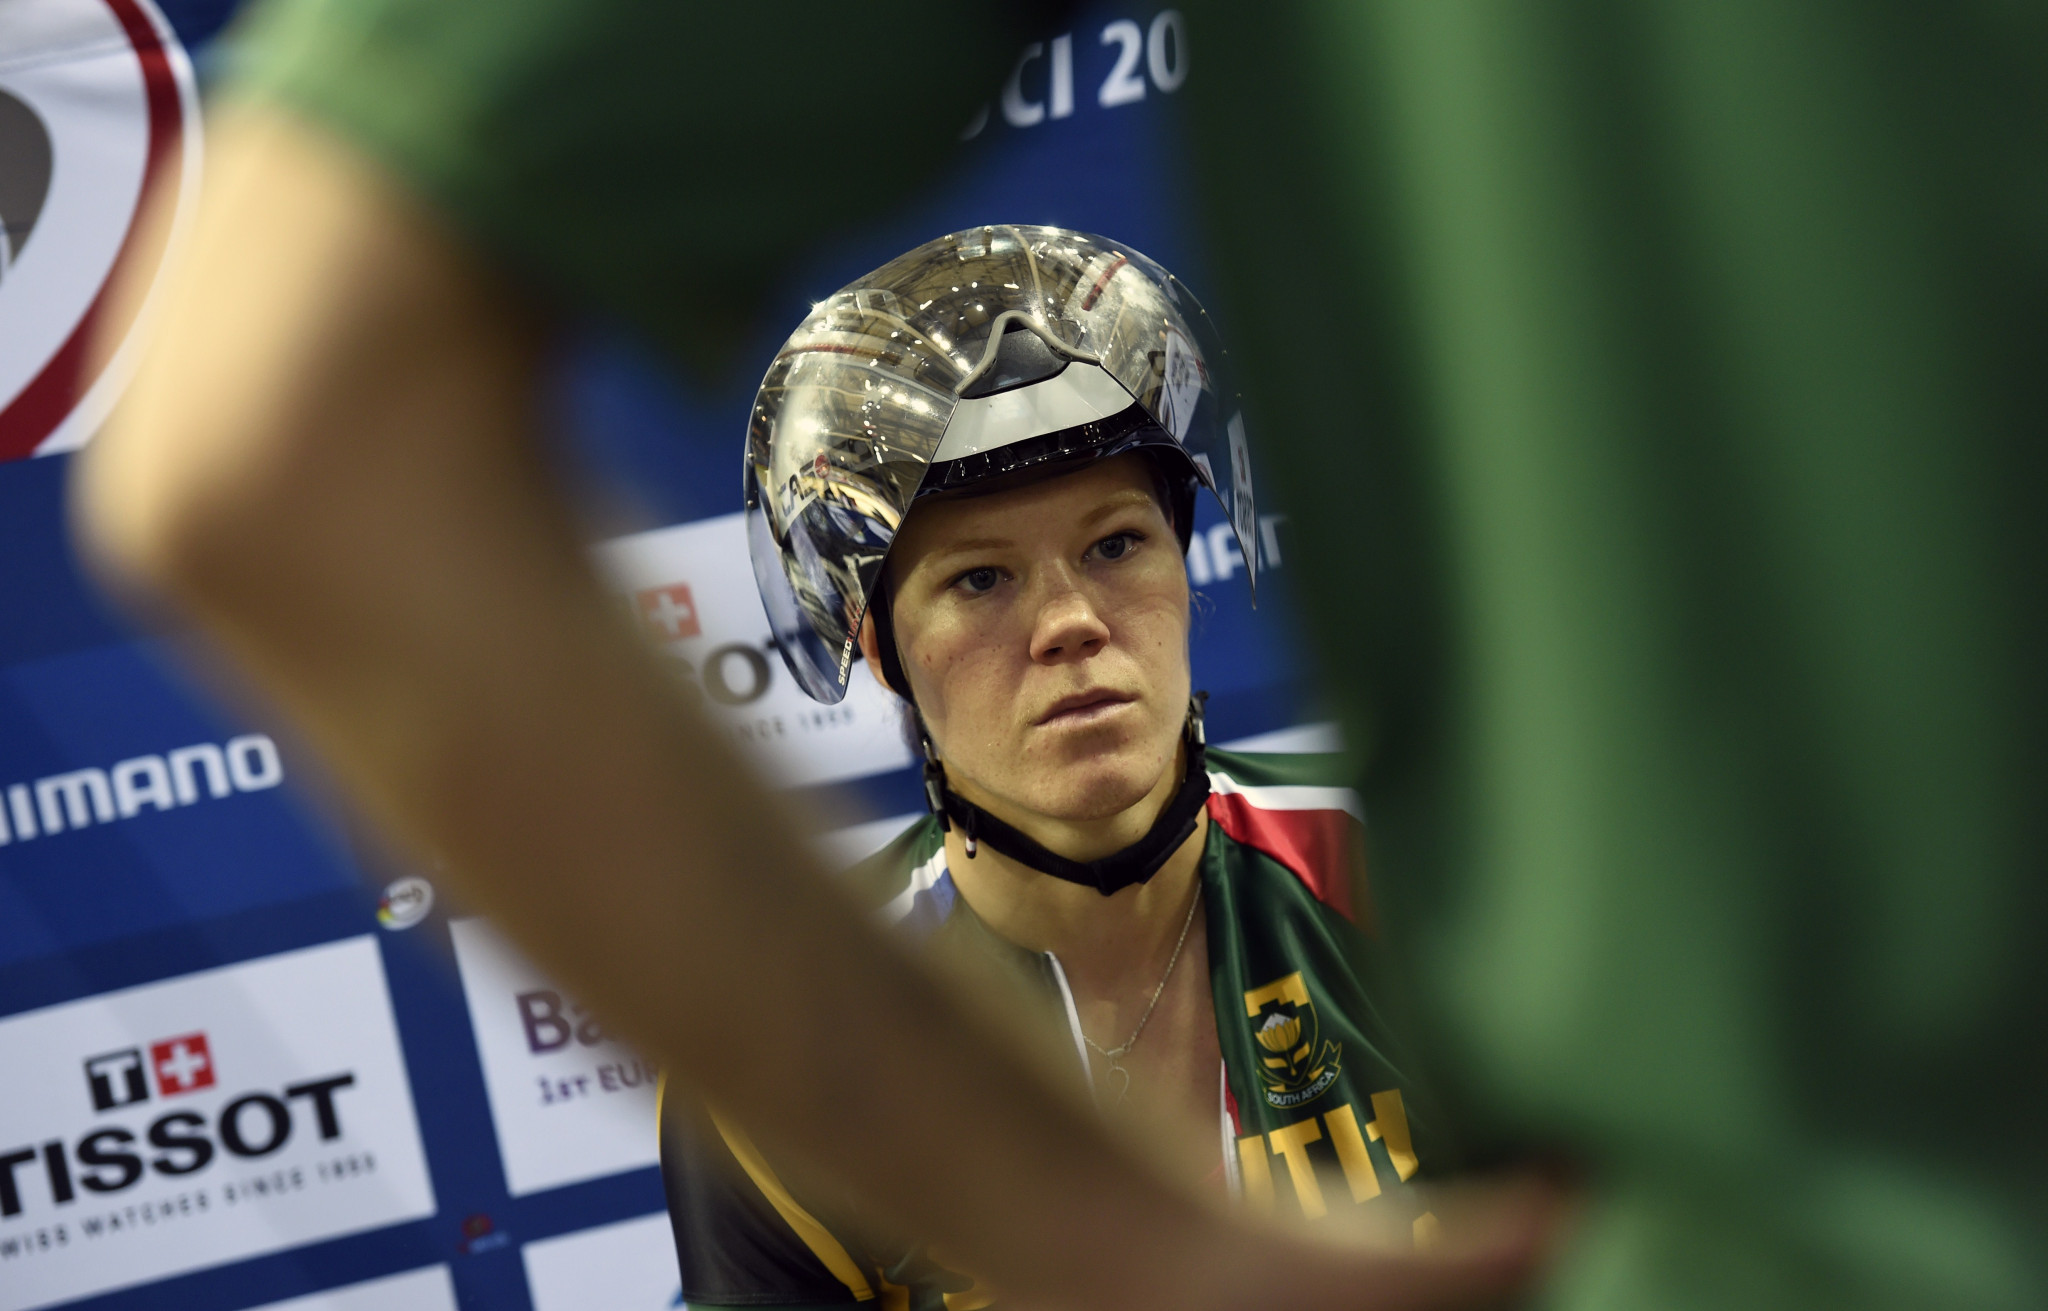 South African cyclist Matthee wins women's road race at African Games